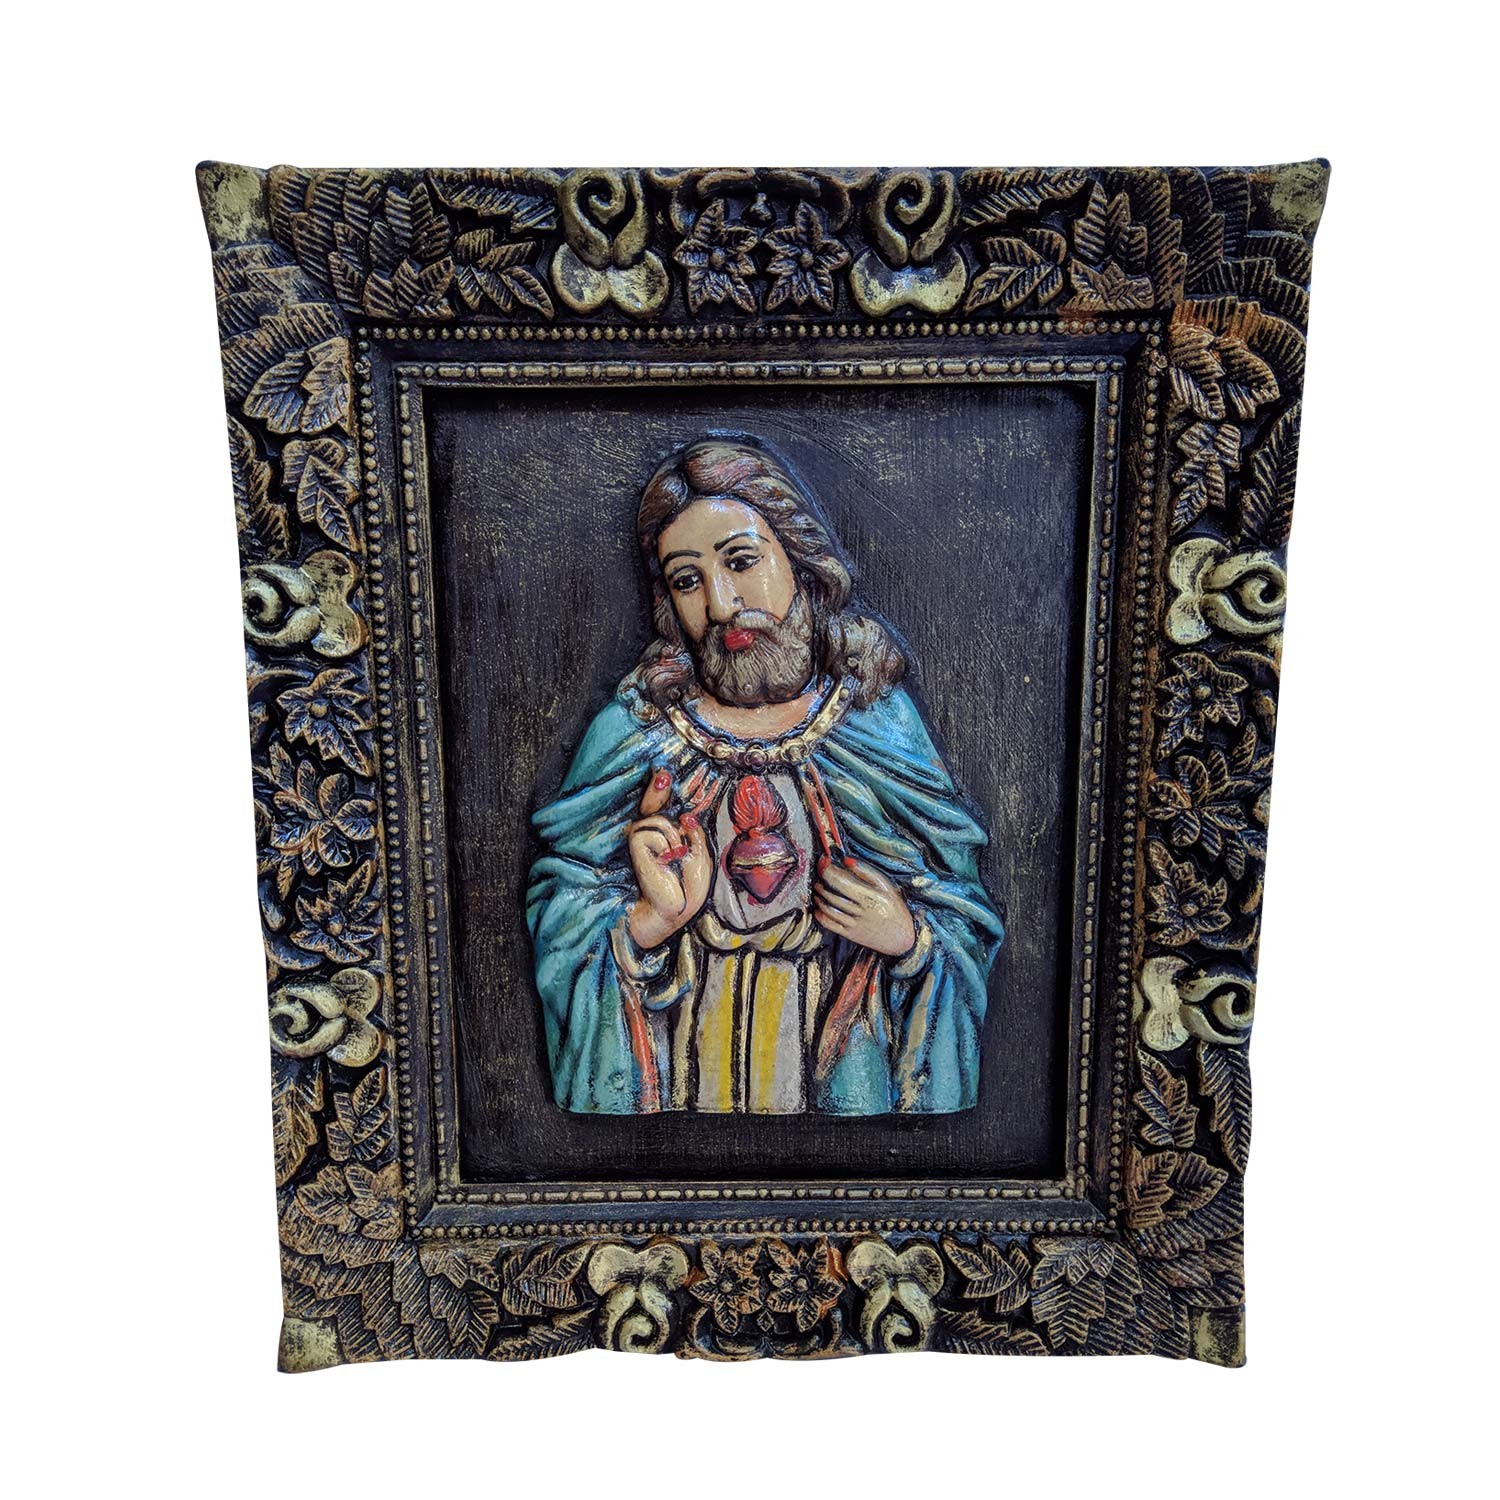 "India Meets India Handicraft Lord Jesus Wall Hanging, Wall Décor, 13""x12"" Inch, Best Gifting Made By Awarded Indian Artisan"